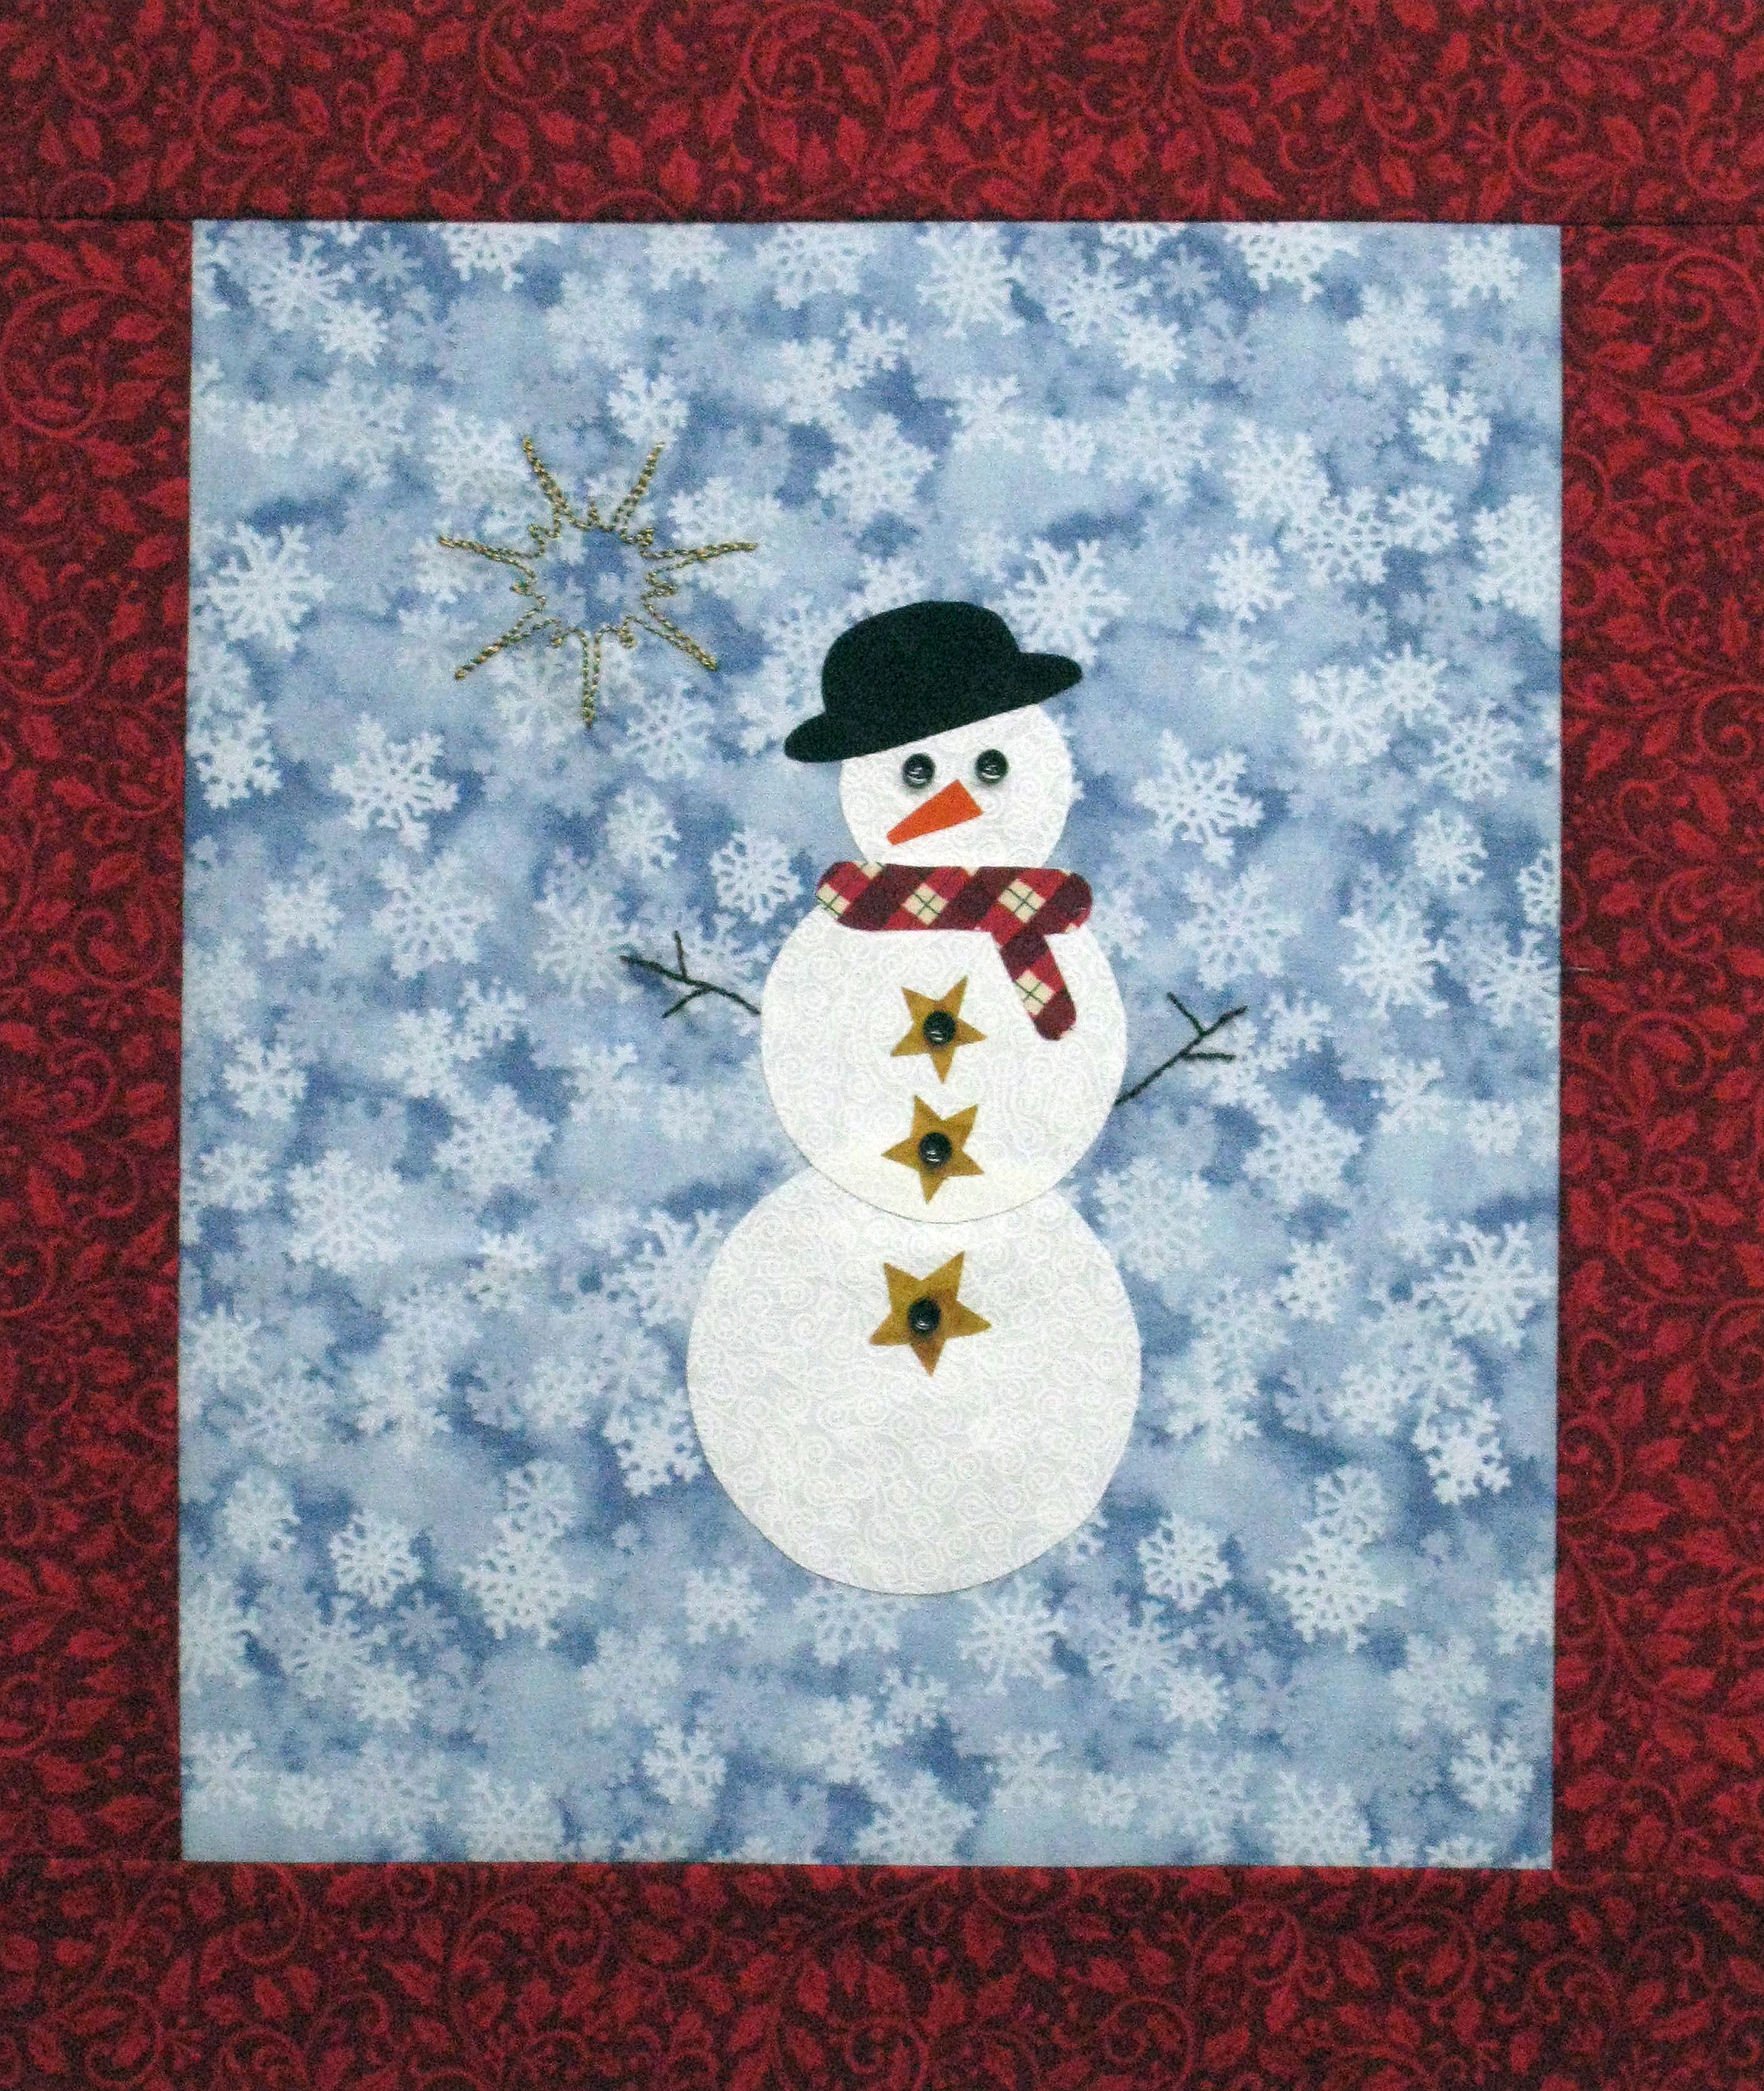 Snow Cool by Chatterbox Quilts uses hand embroidery and fusible web appliqué to create a small wall hanging.